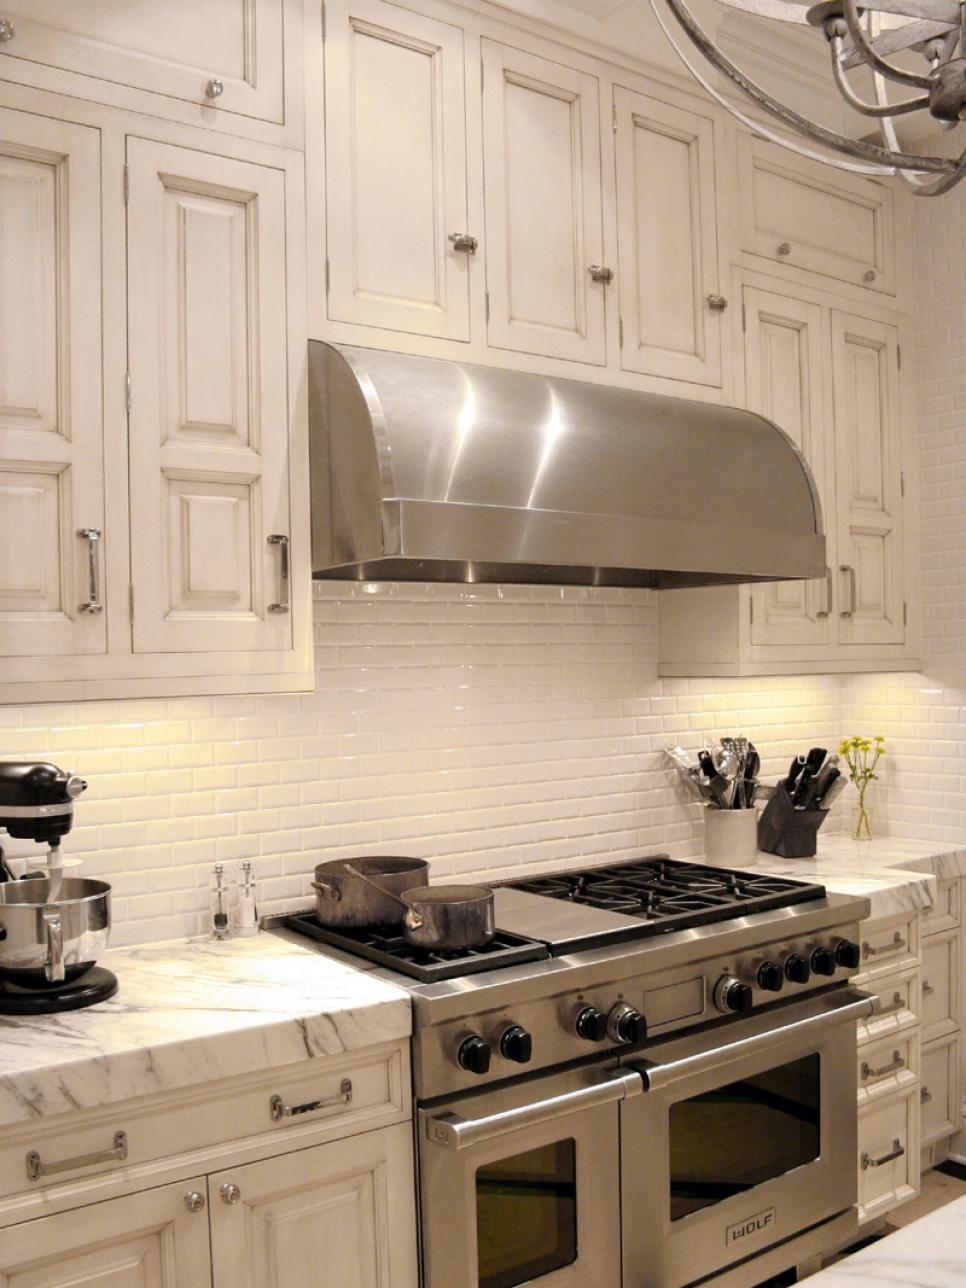 Uncategorized Images Kitchen Backsplash 15 kitchen backsplashes for every style hgtv